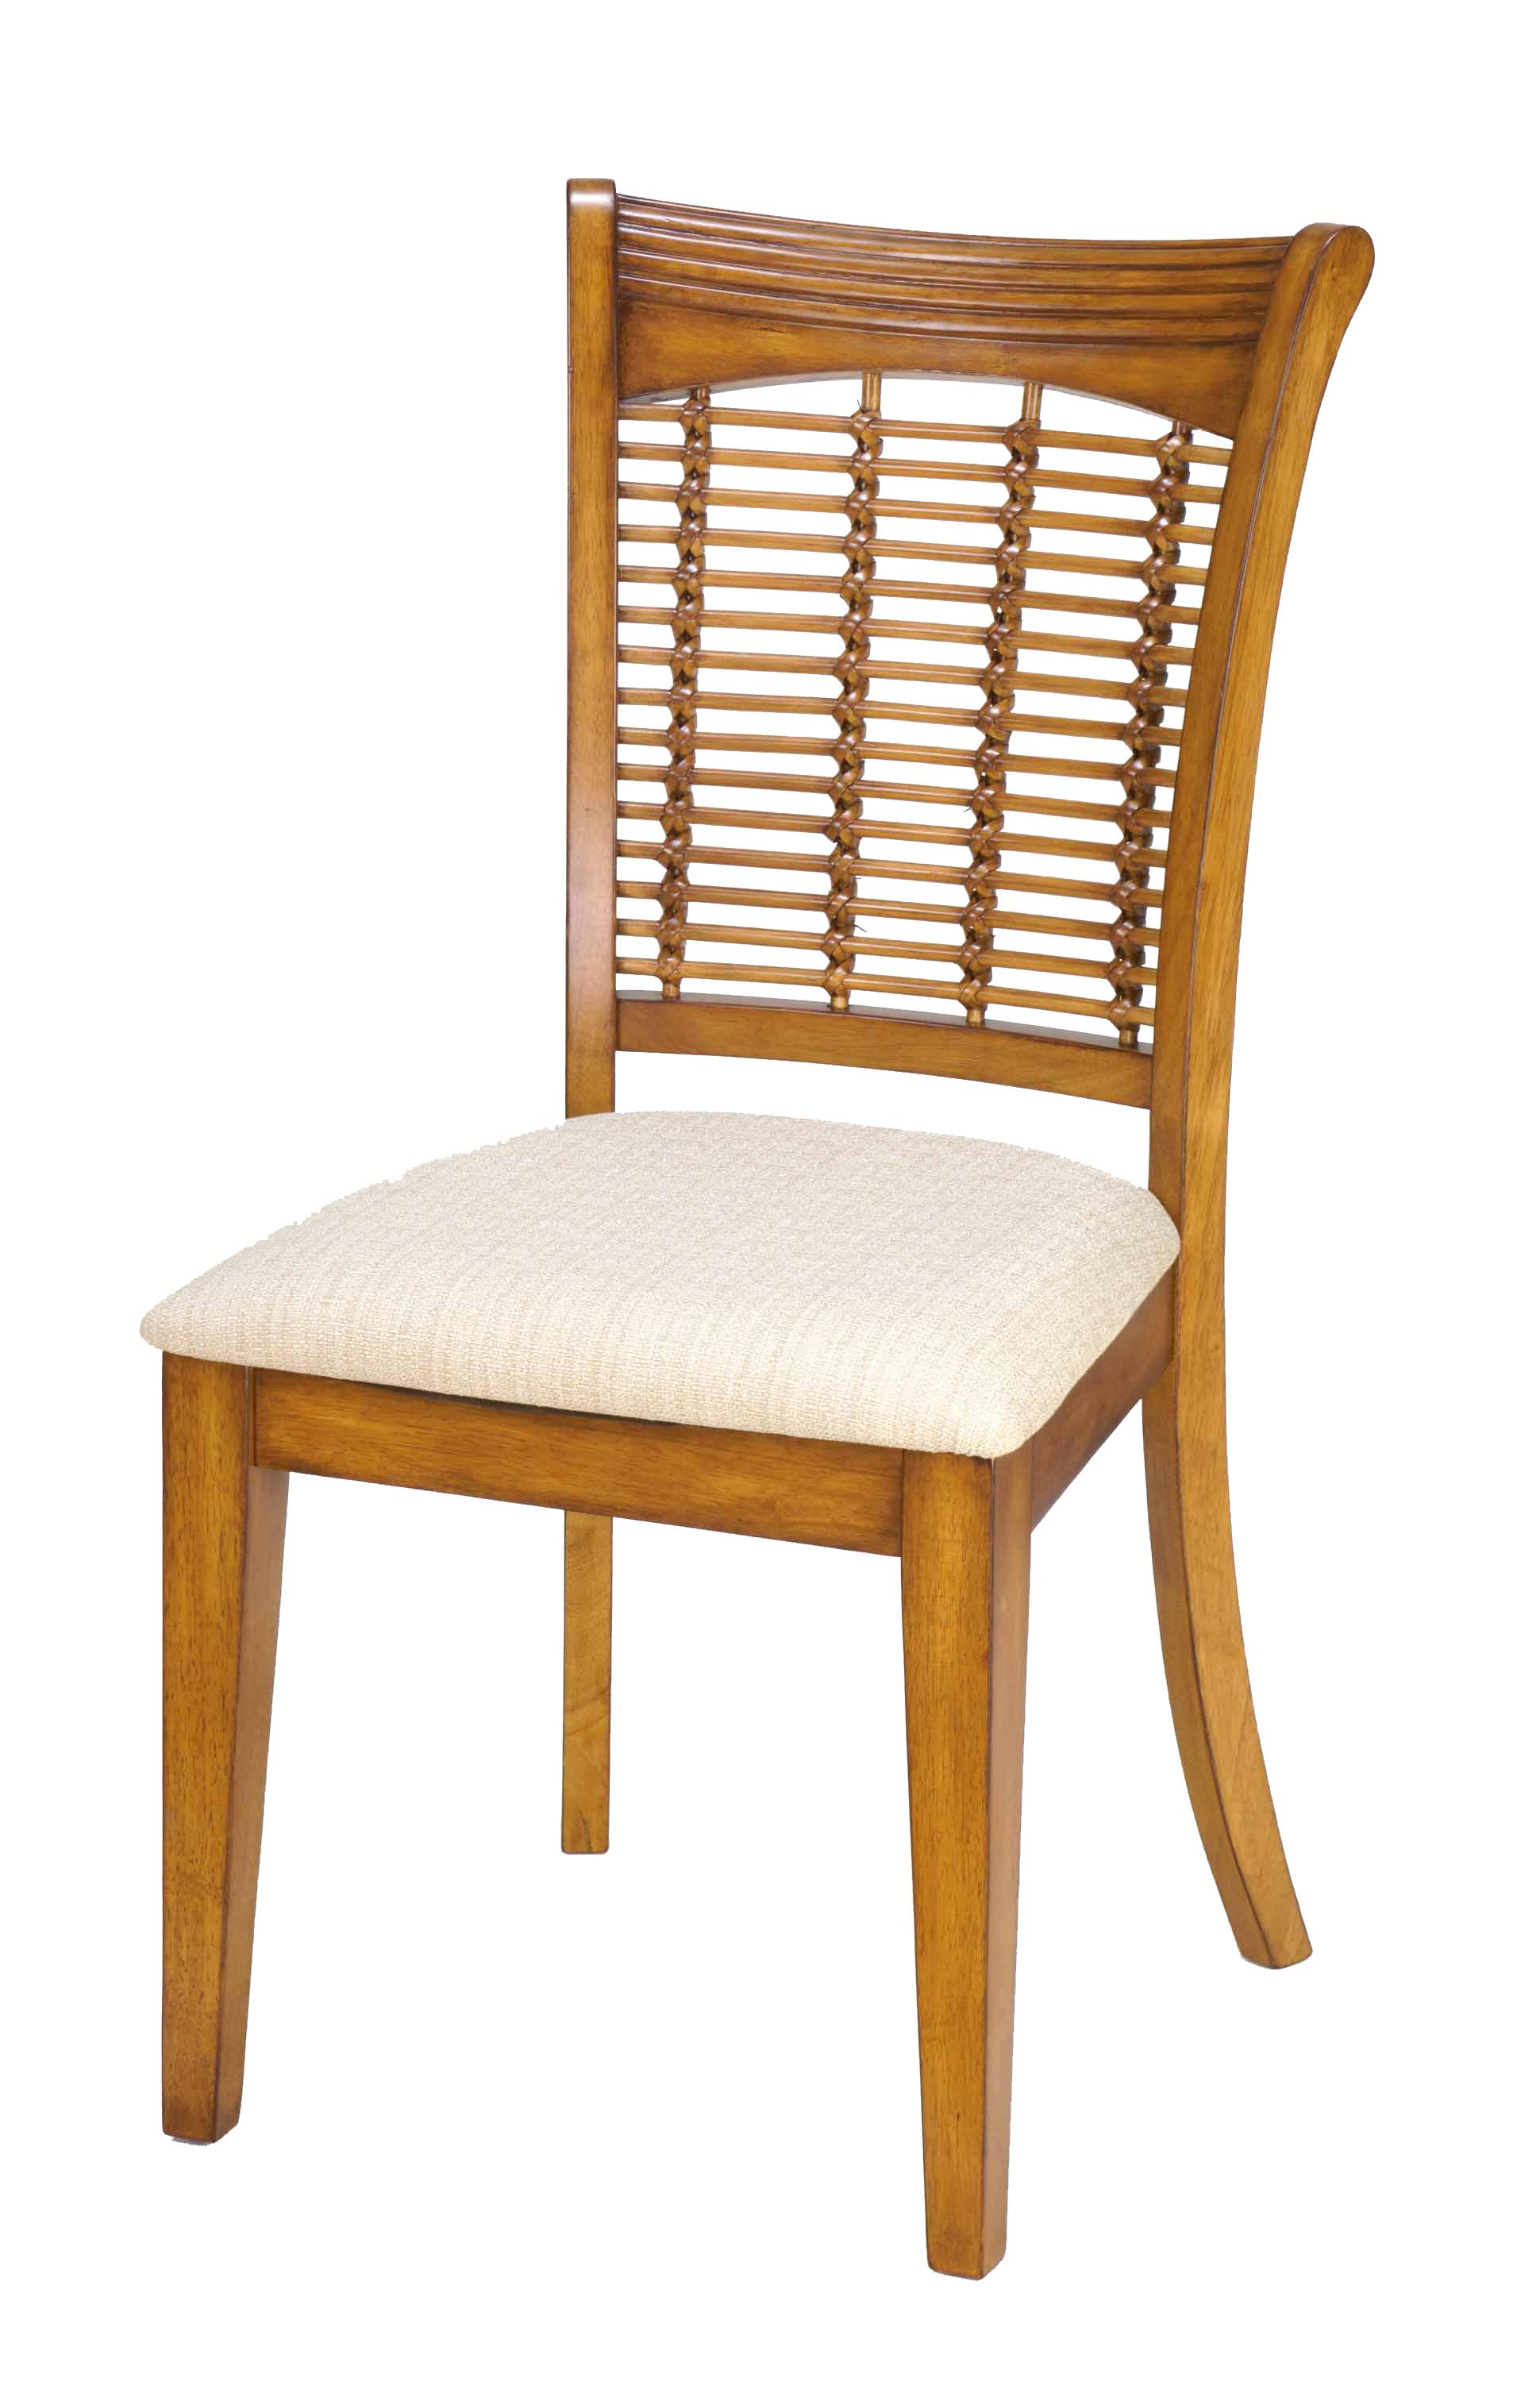 Bayberry and Glenmary Wicker Dining Chair by Hillsdale at SuperStore